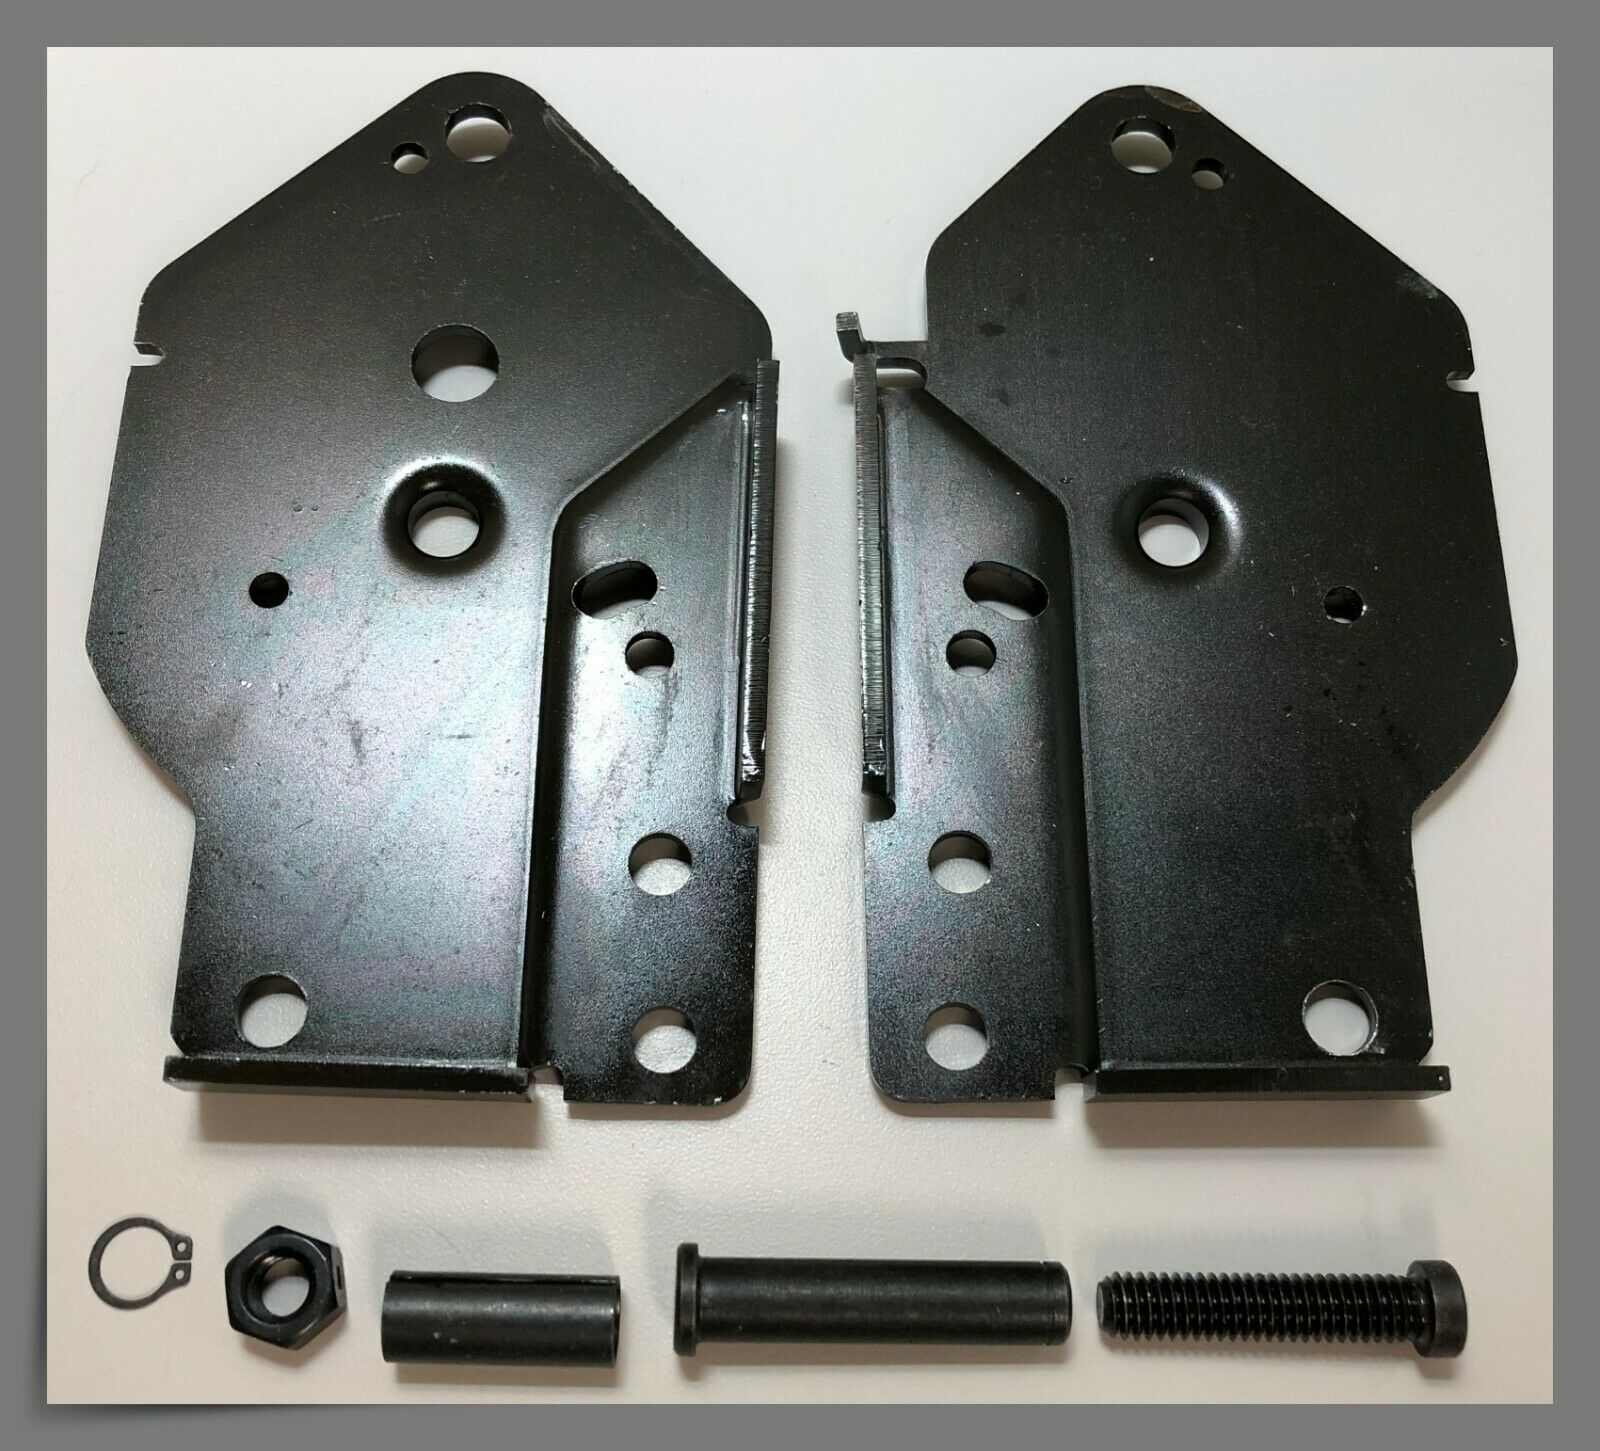 05720 Replacement Plate Kit Greenlee fits 764